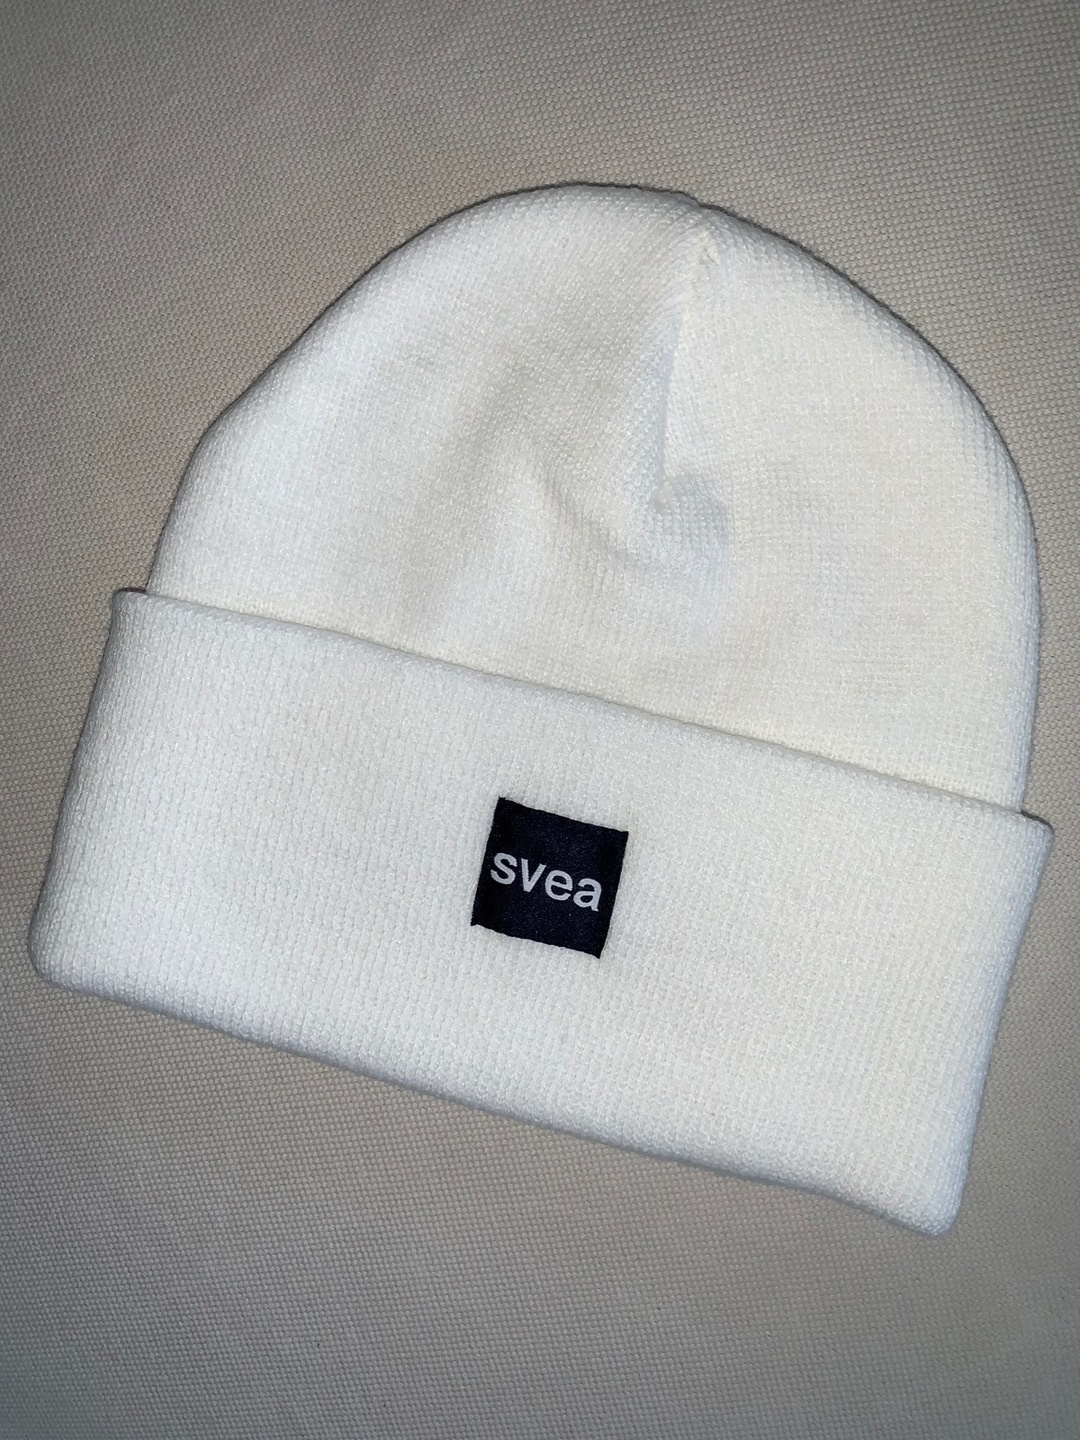 Women's hats & caps - SVEA photo 1